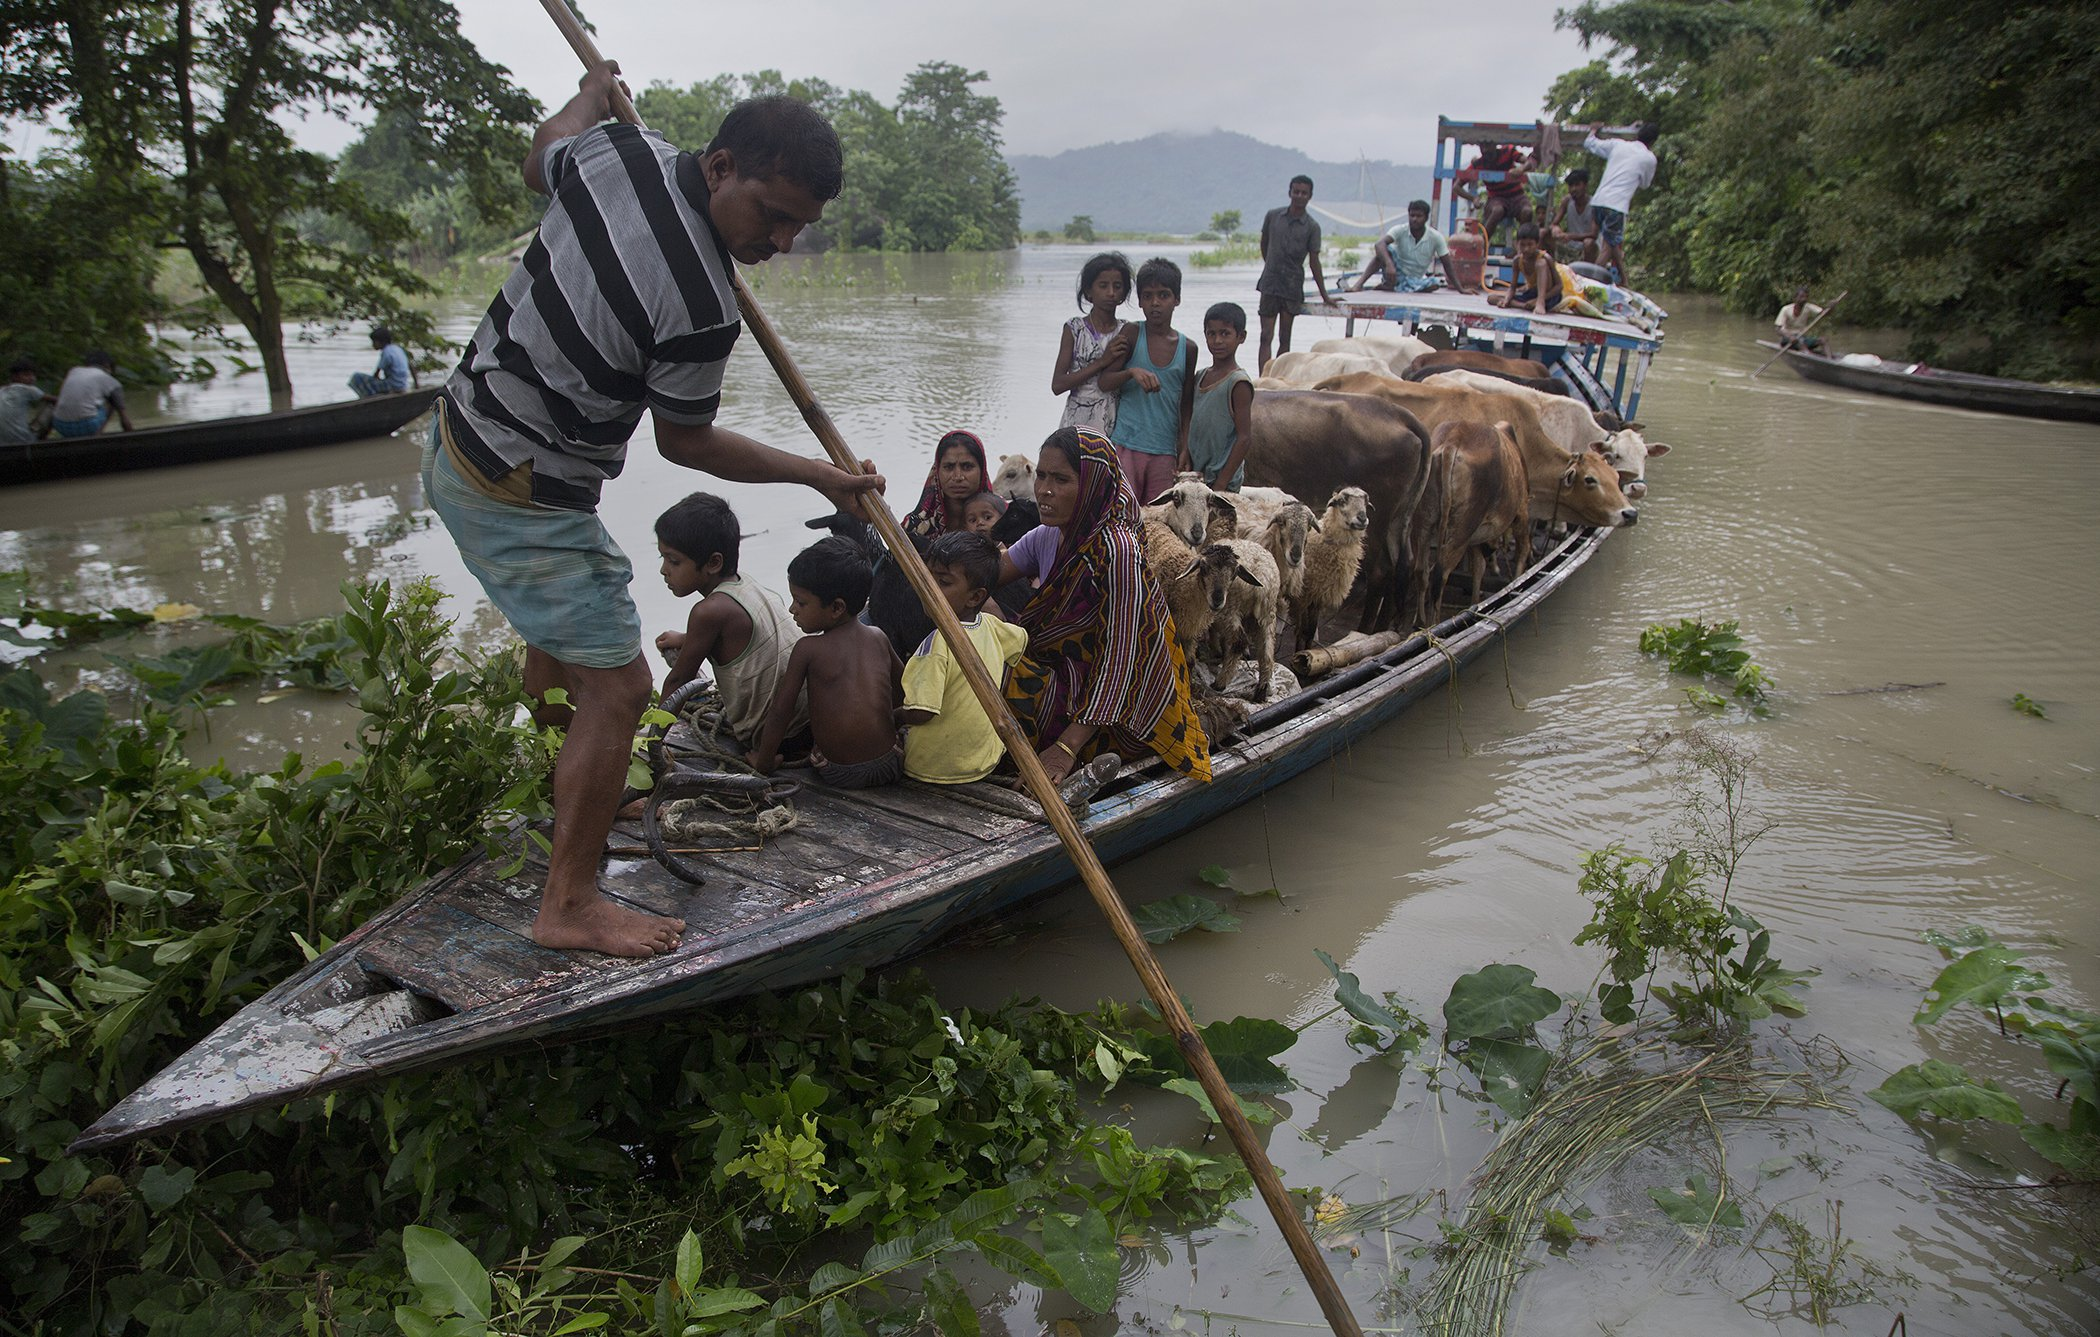 India-South-East-Asia-Flooding-003.jpg